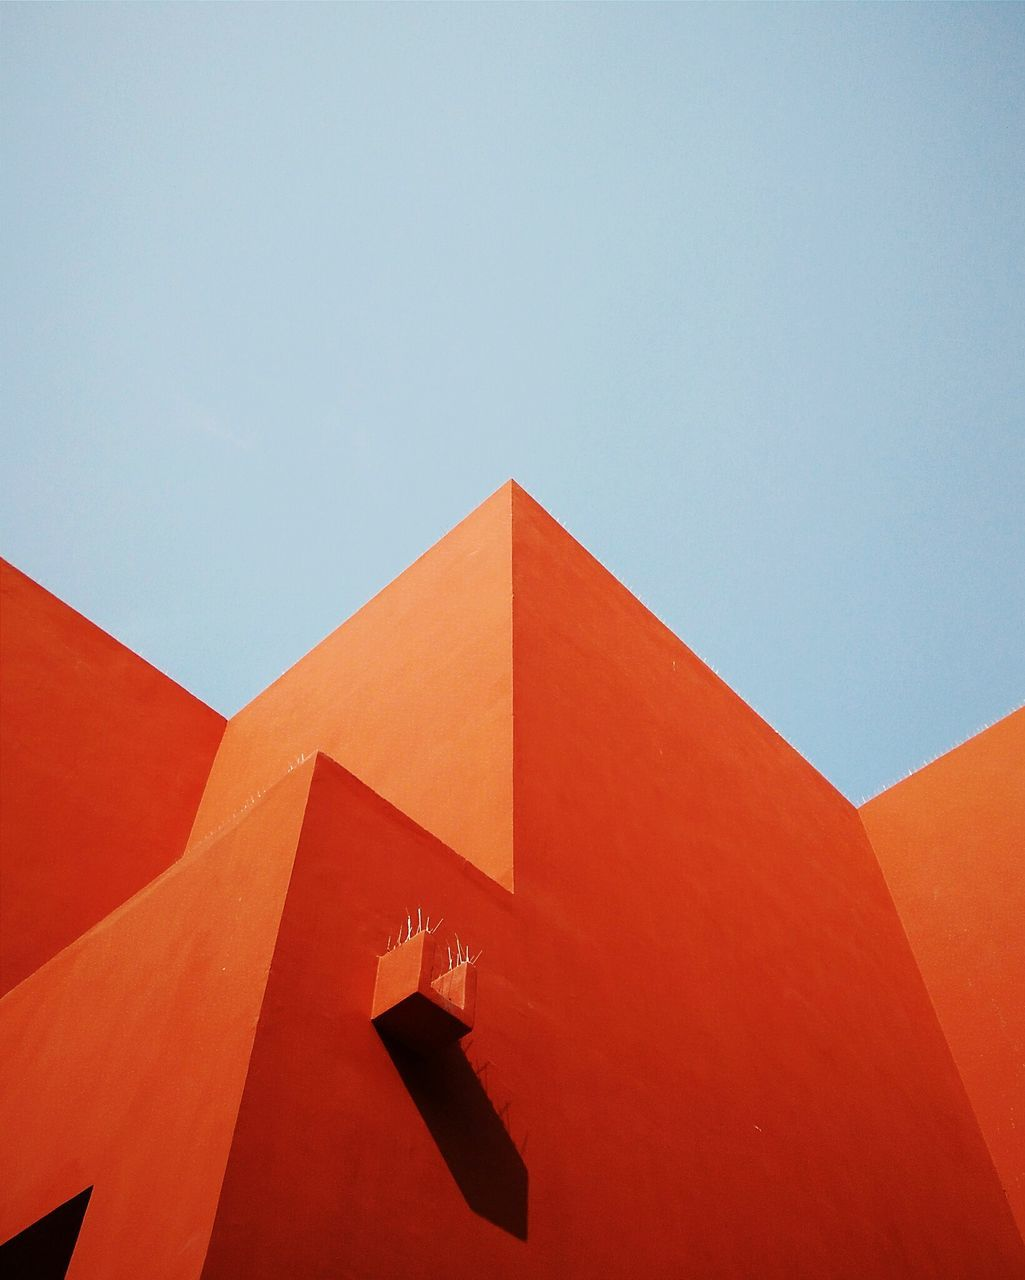 architecture, sky, built structure, nature, copy space, clear sky, low angle view, building exterior, day, no people, blue, sunlight, outdoors, orange color, red, wall - building feature, building, shape, geometric shape, shadow